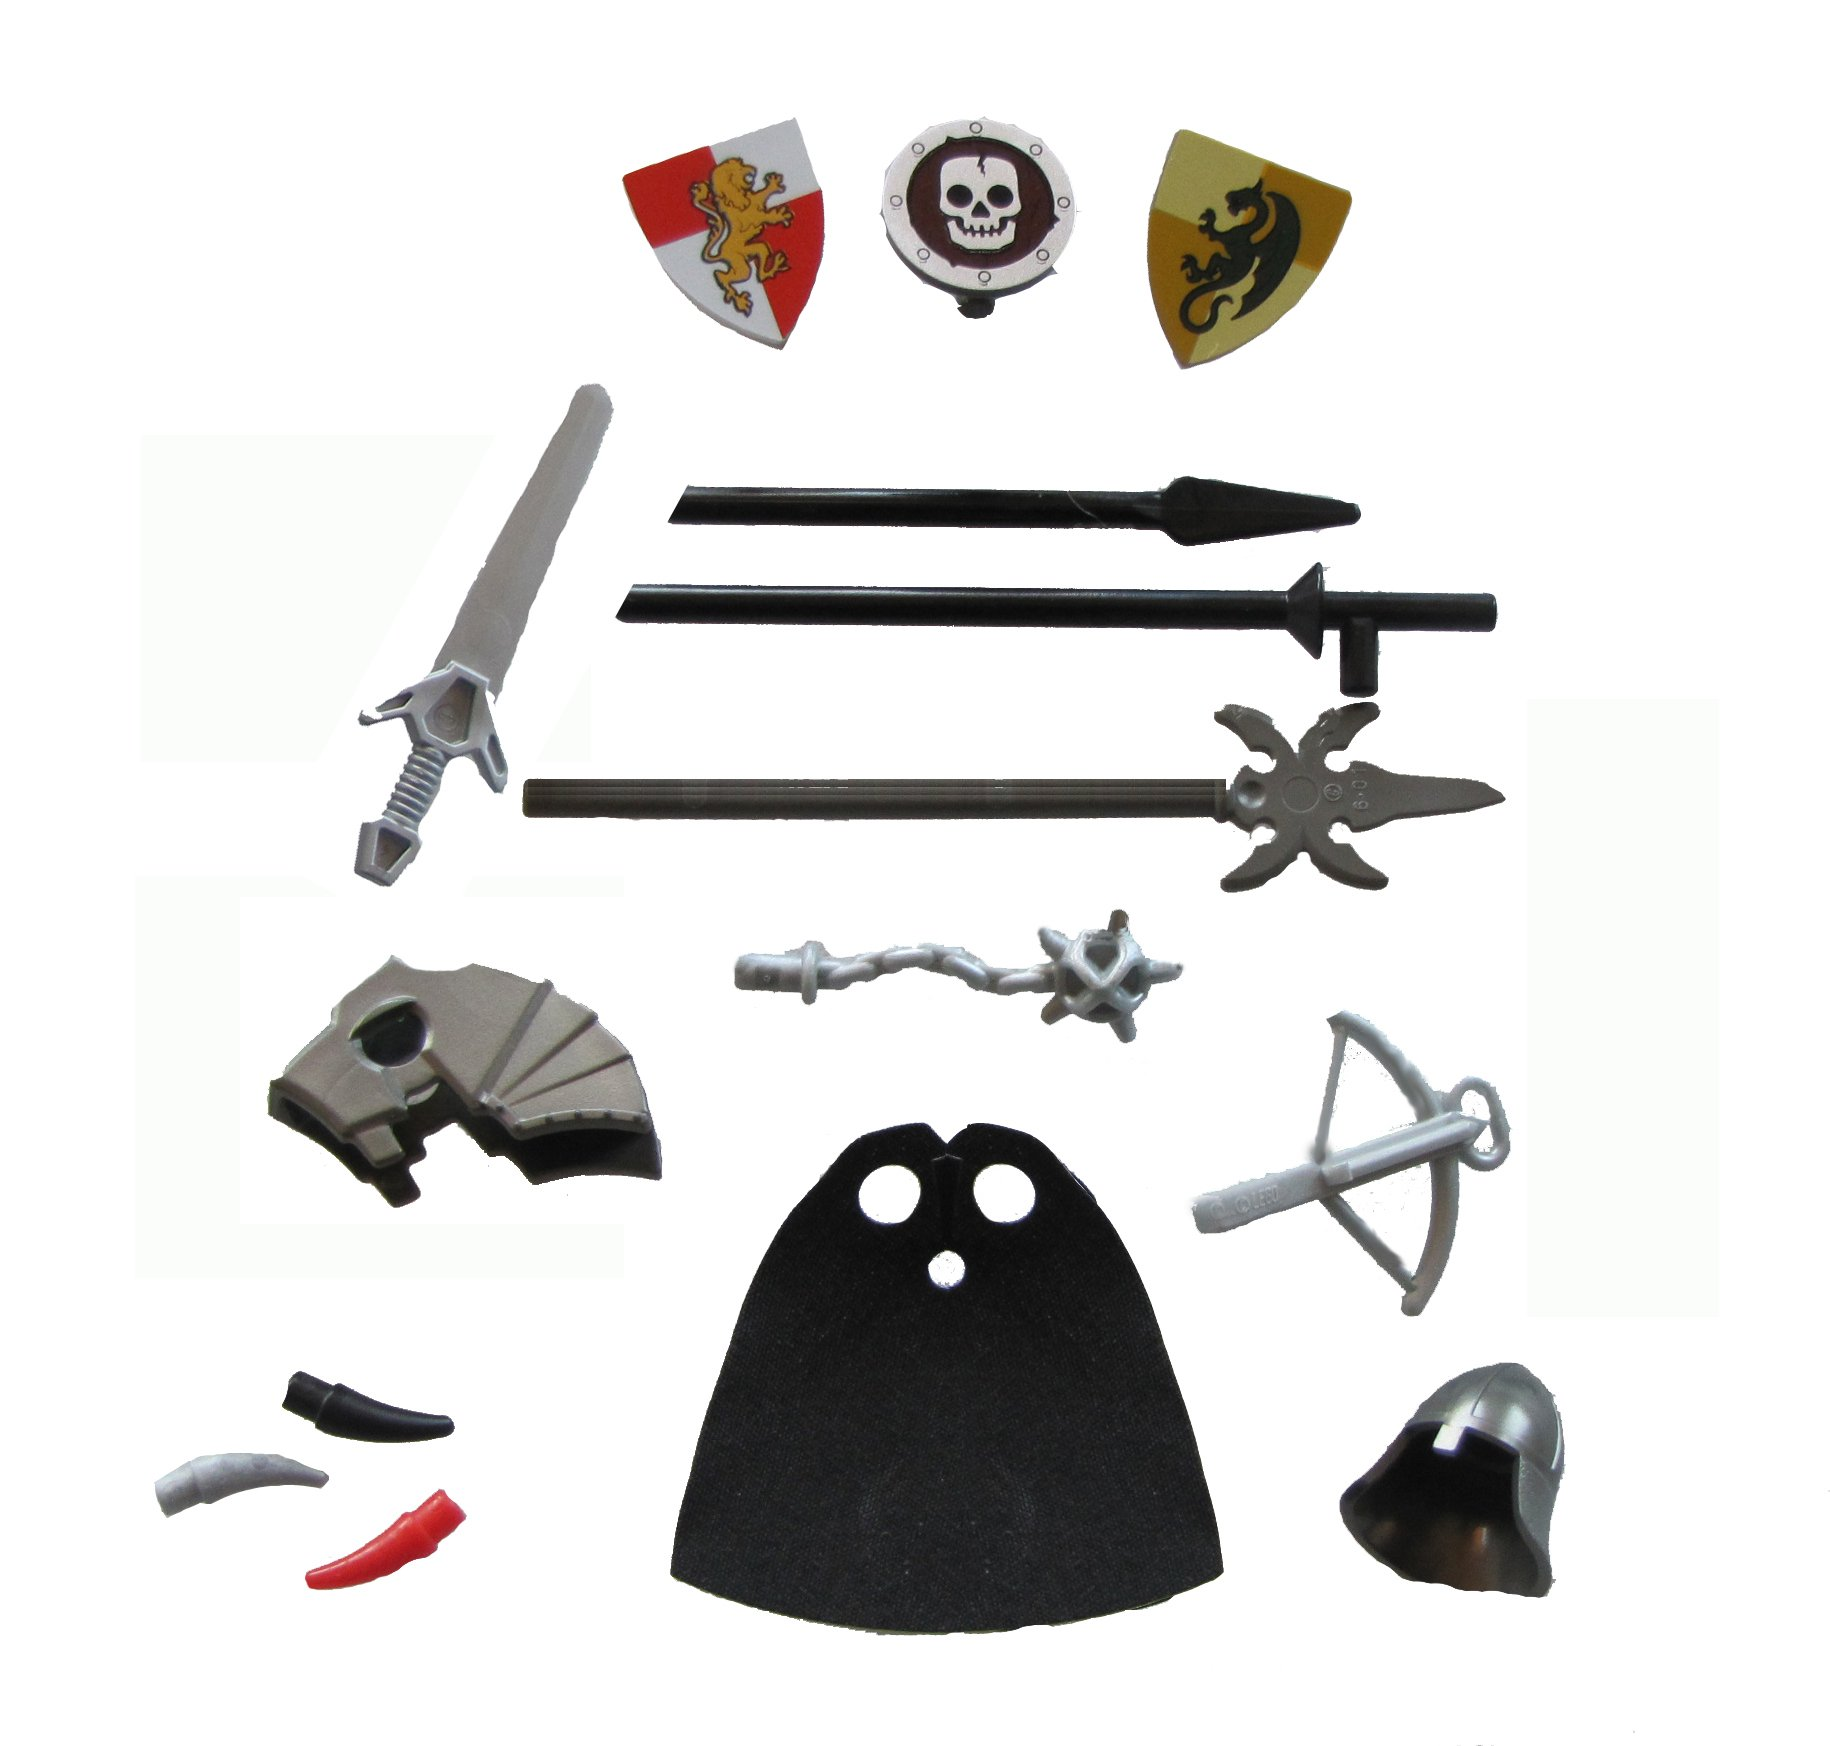 LEGO Knight Weapon and Armor Accessory Kit (Castle/Kingdom)